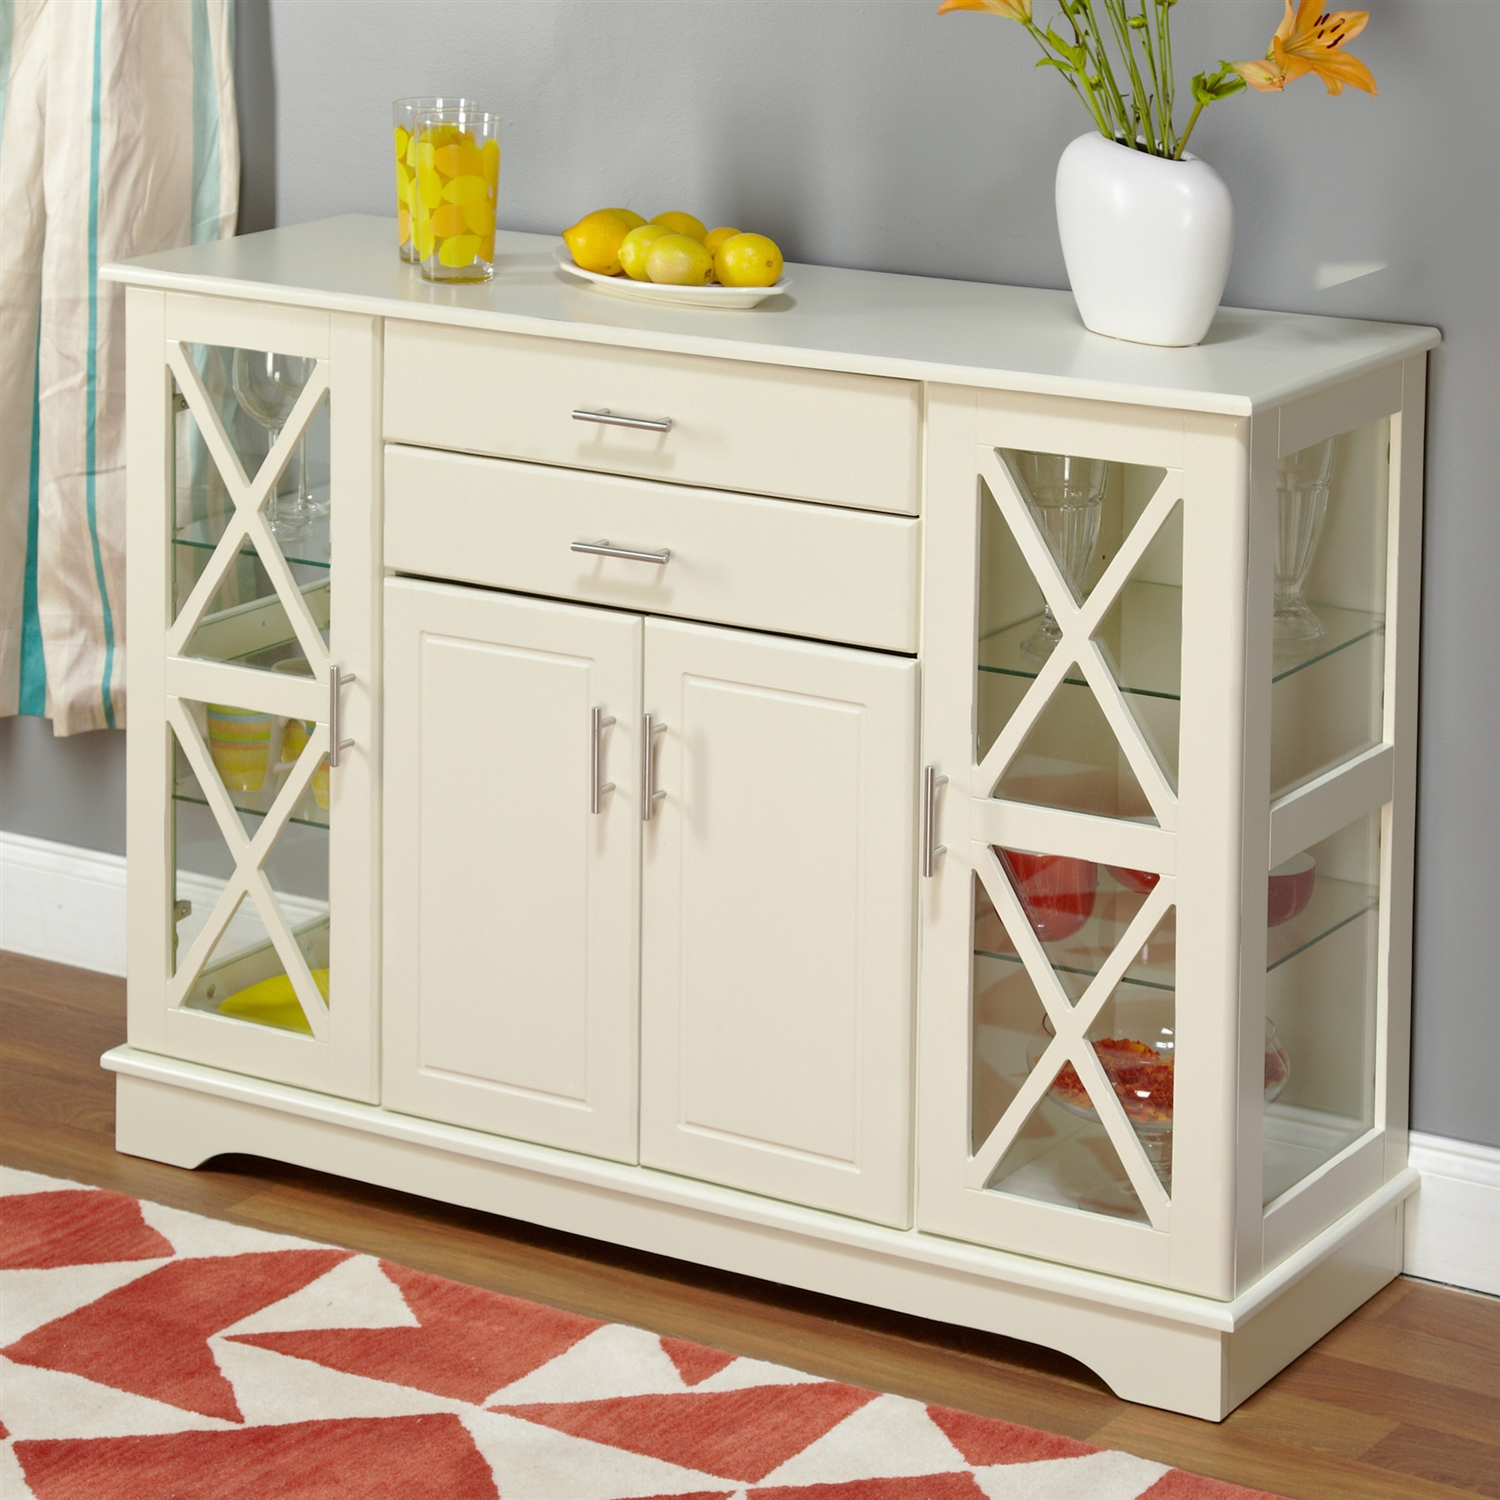 White Kitchen Buffet: White Wood Buffet Sideboard Cabinet With Glass Display